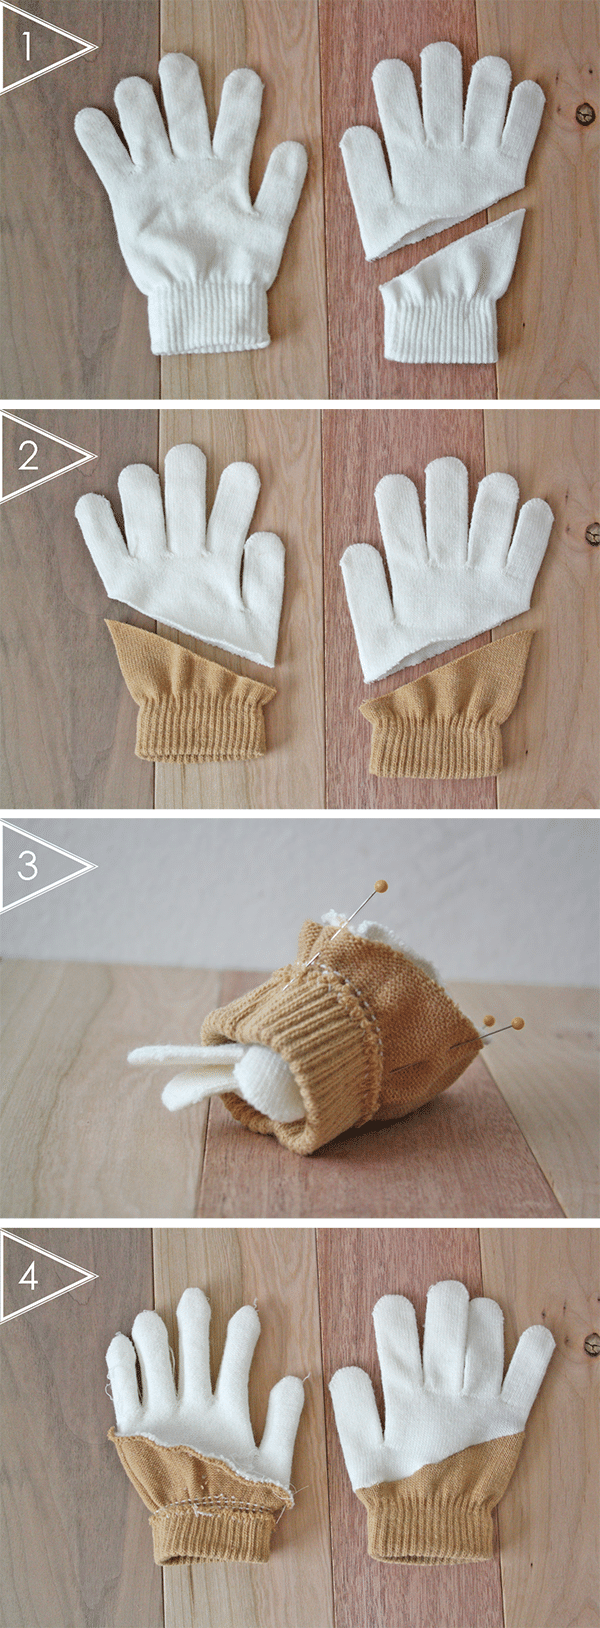 color-blocked gloves tutorial